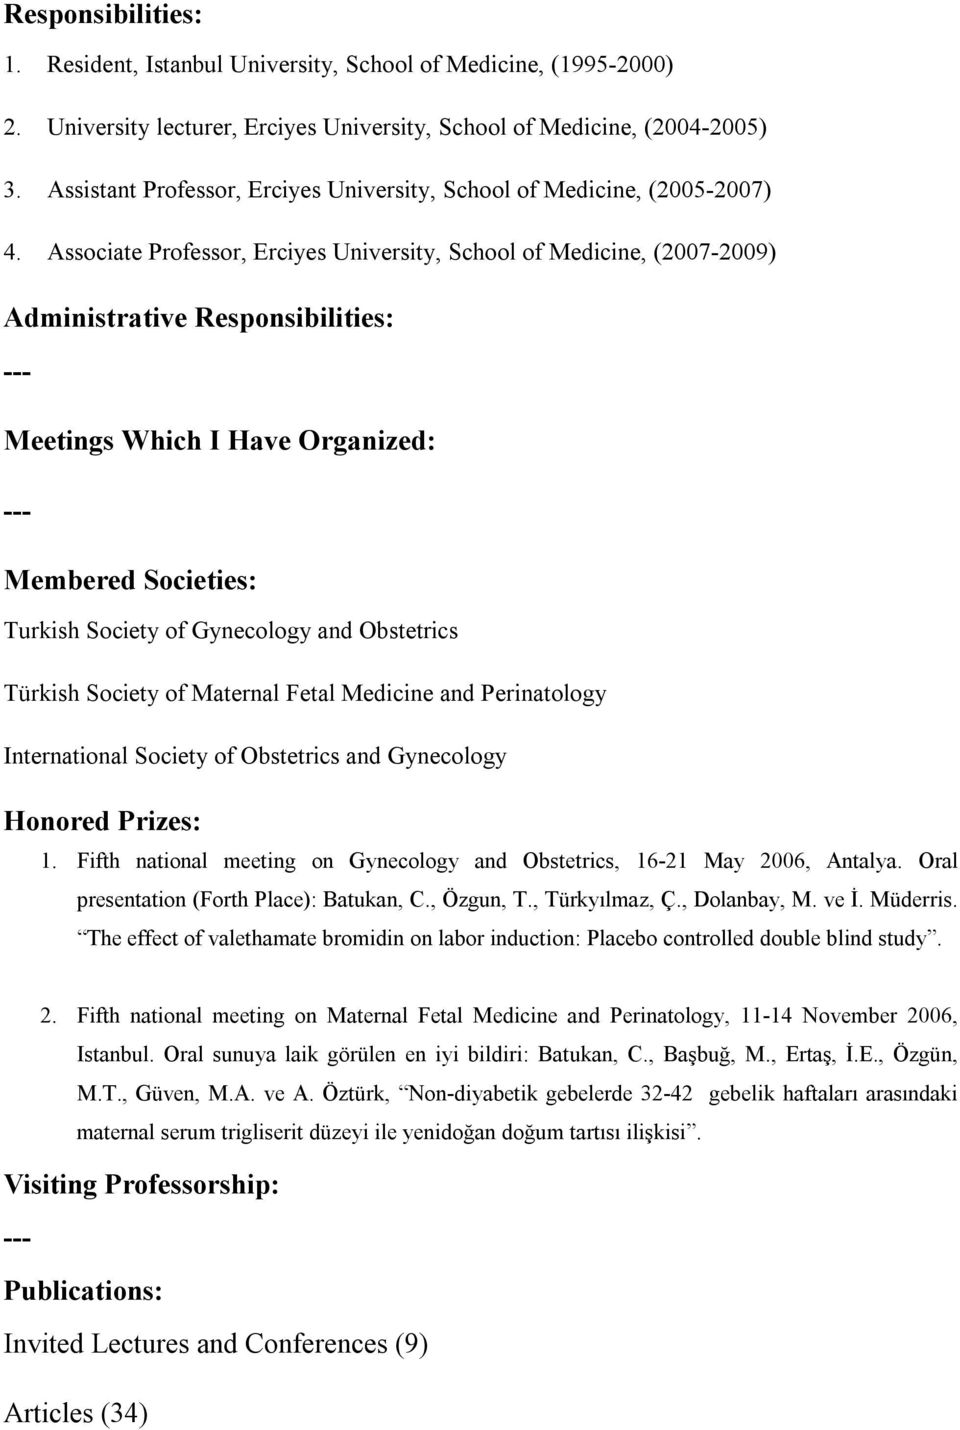 Associate Professor, Erciyes University, School of Medicine, (2007-2009) Administrative Responsibilities: --- Meetings Which I Have Organized: --- Membered Societies: Turkish Society of Gynecology